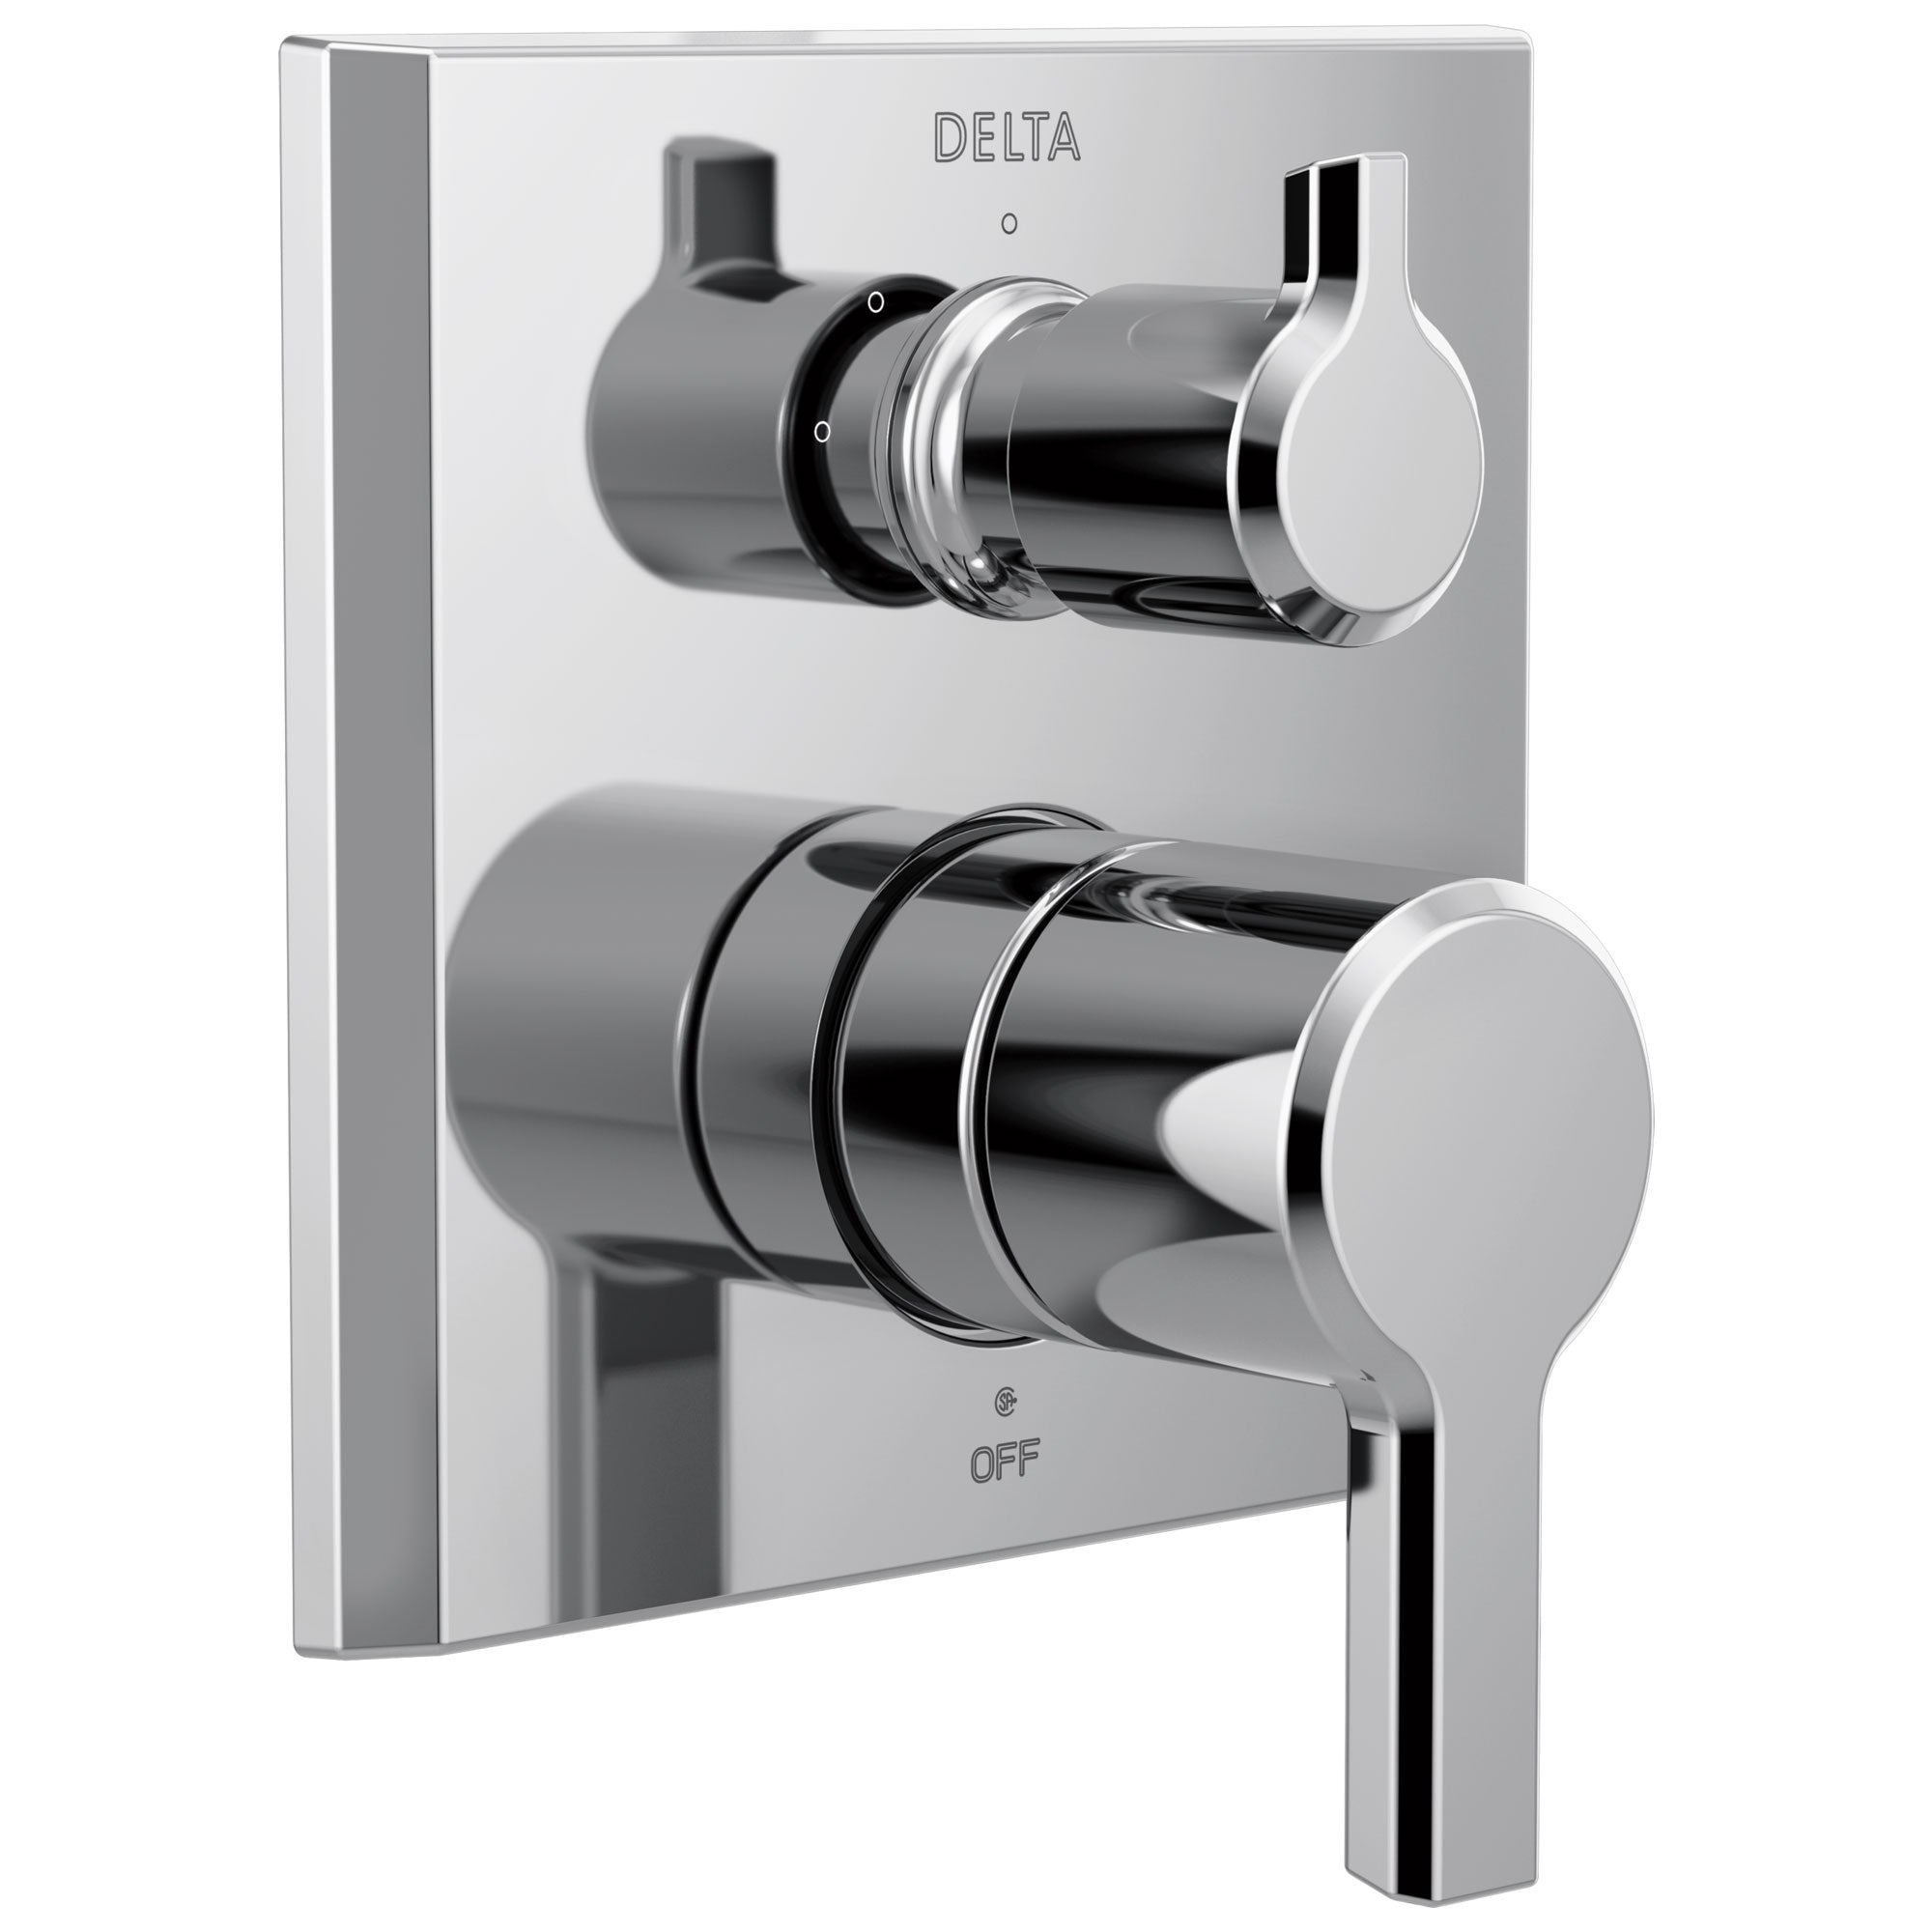 Delta Pivotal Chrome Finish 2-Handle Monitor 14 Series Shower Control Trim Kit with 3-Setting Integrated Diverter (Requires Valve) DT24899